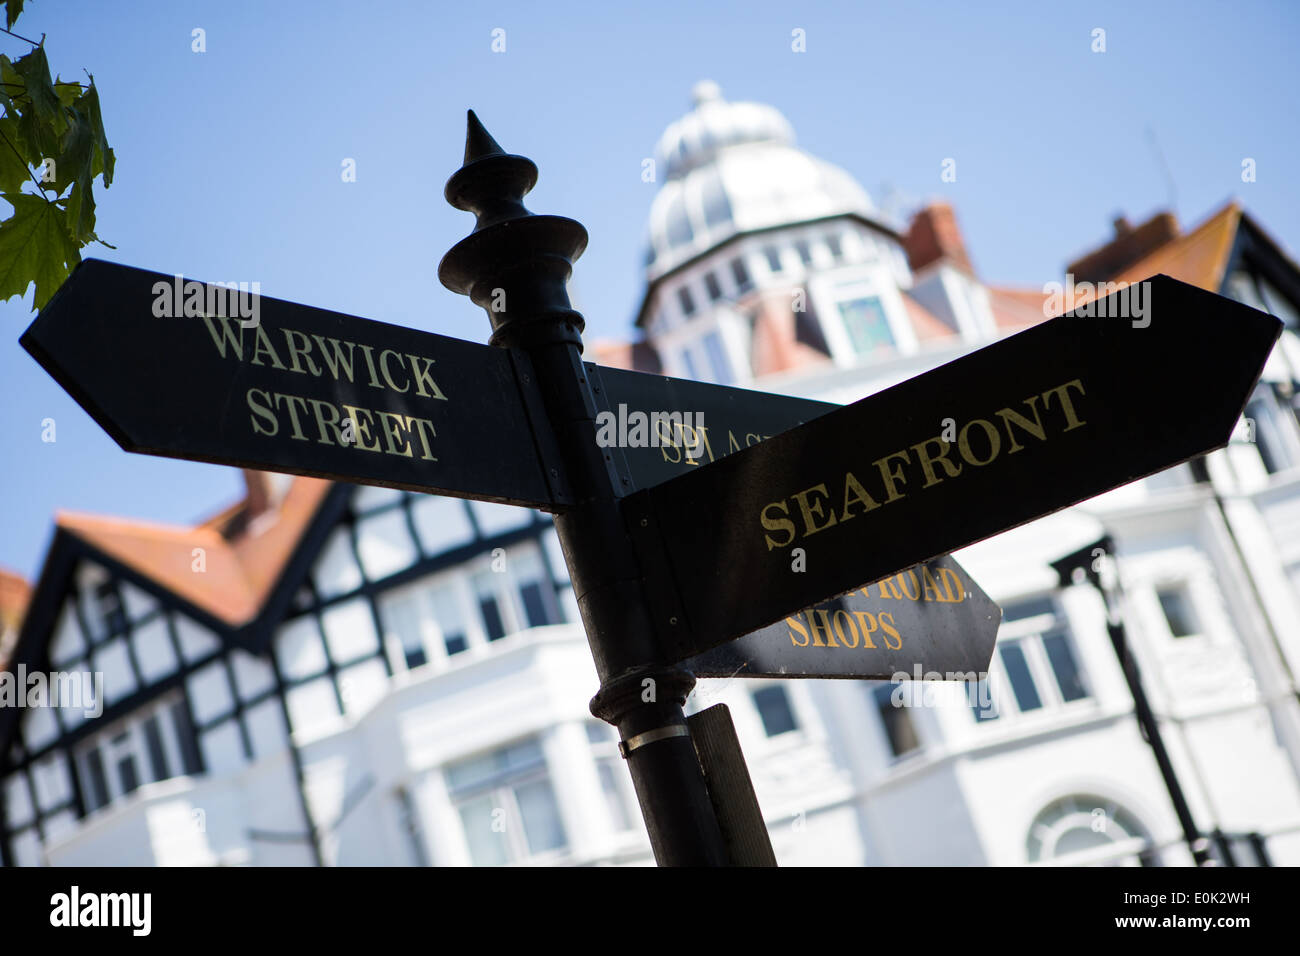 Tourist Information Signpost in Worthing - Stock Image